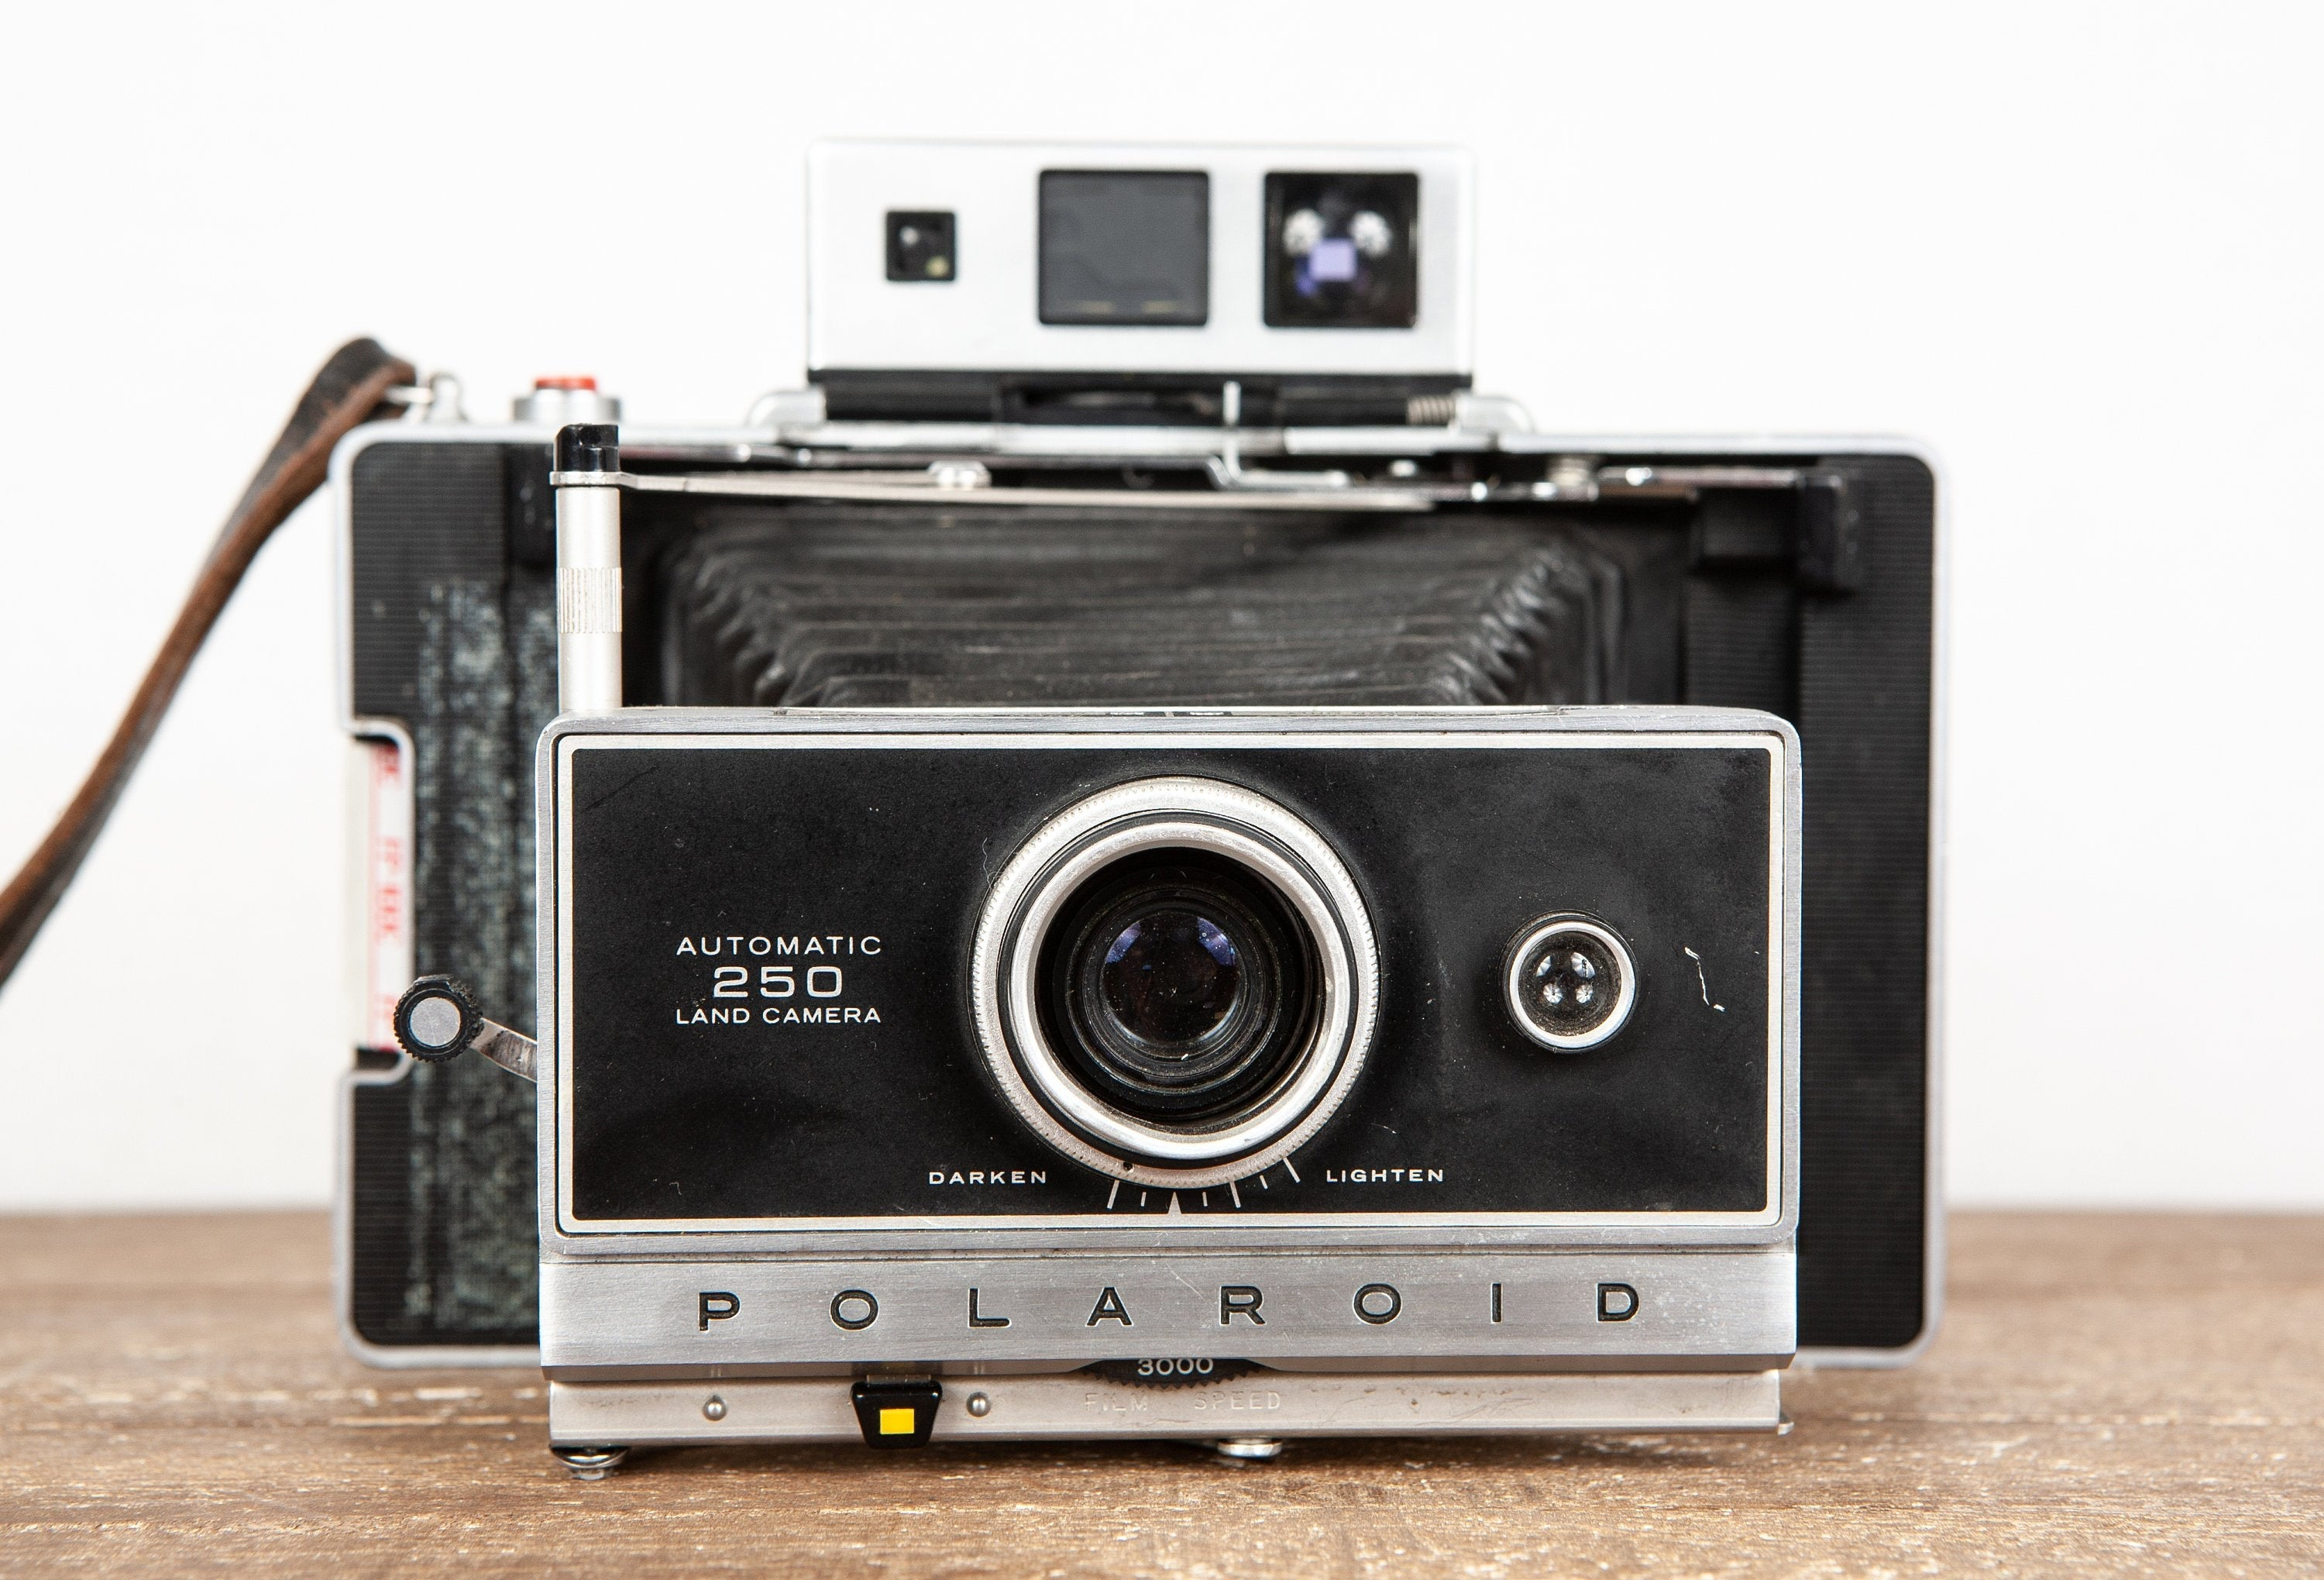 coolvintagecameras - Polaroid 250 Instant Land Camera in Good Condition - CoolVintageCameras - Camera